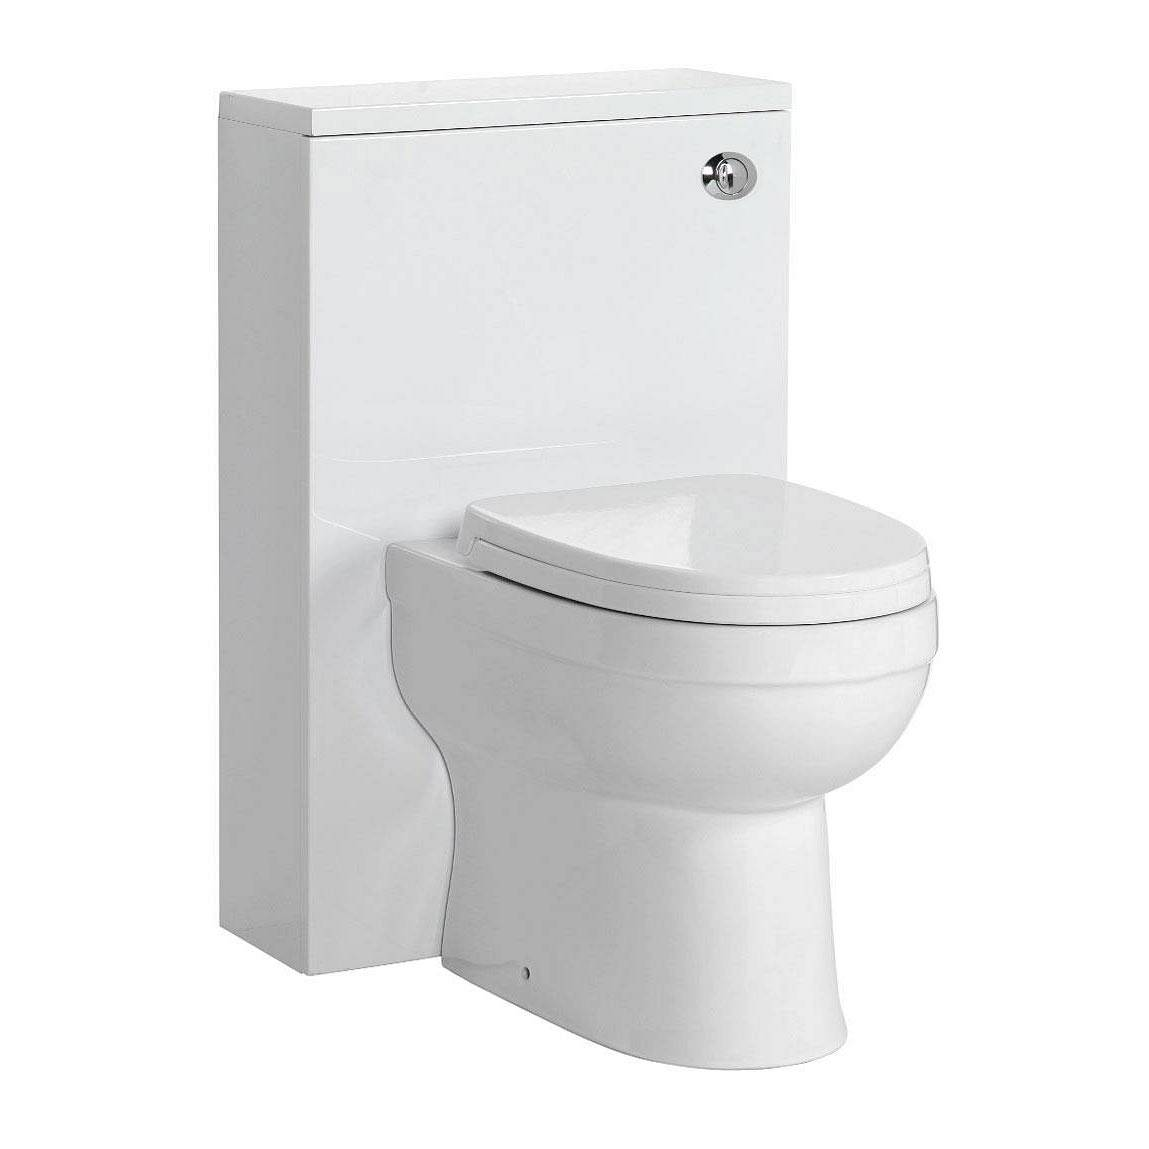 Image of Energy Back To Wall Toilet inc Seat & Slimline White Unit